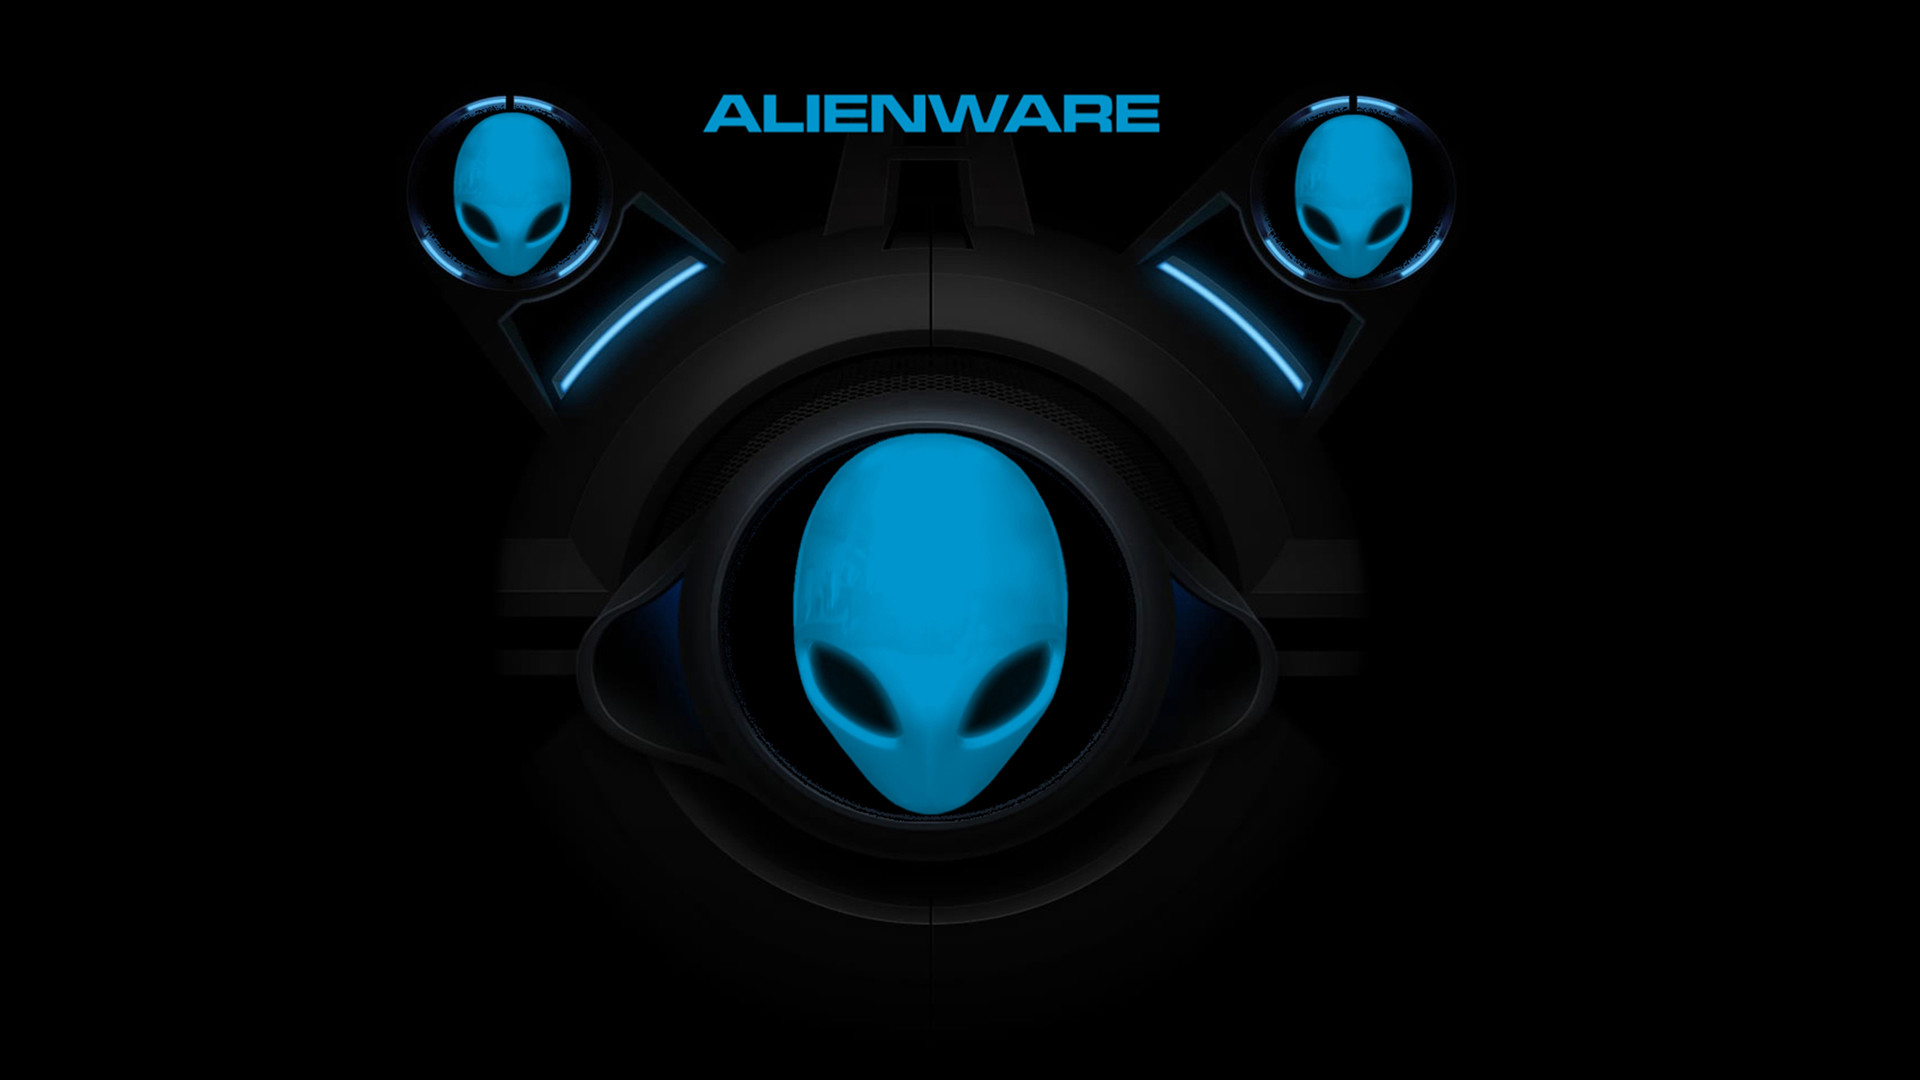 Alienware wallpapers for windows 7 wallpapersafari - 1920x1200 Hd Wallpaper Background Id 58551